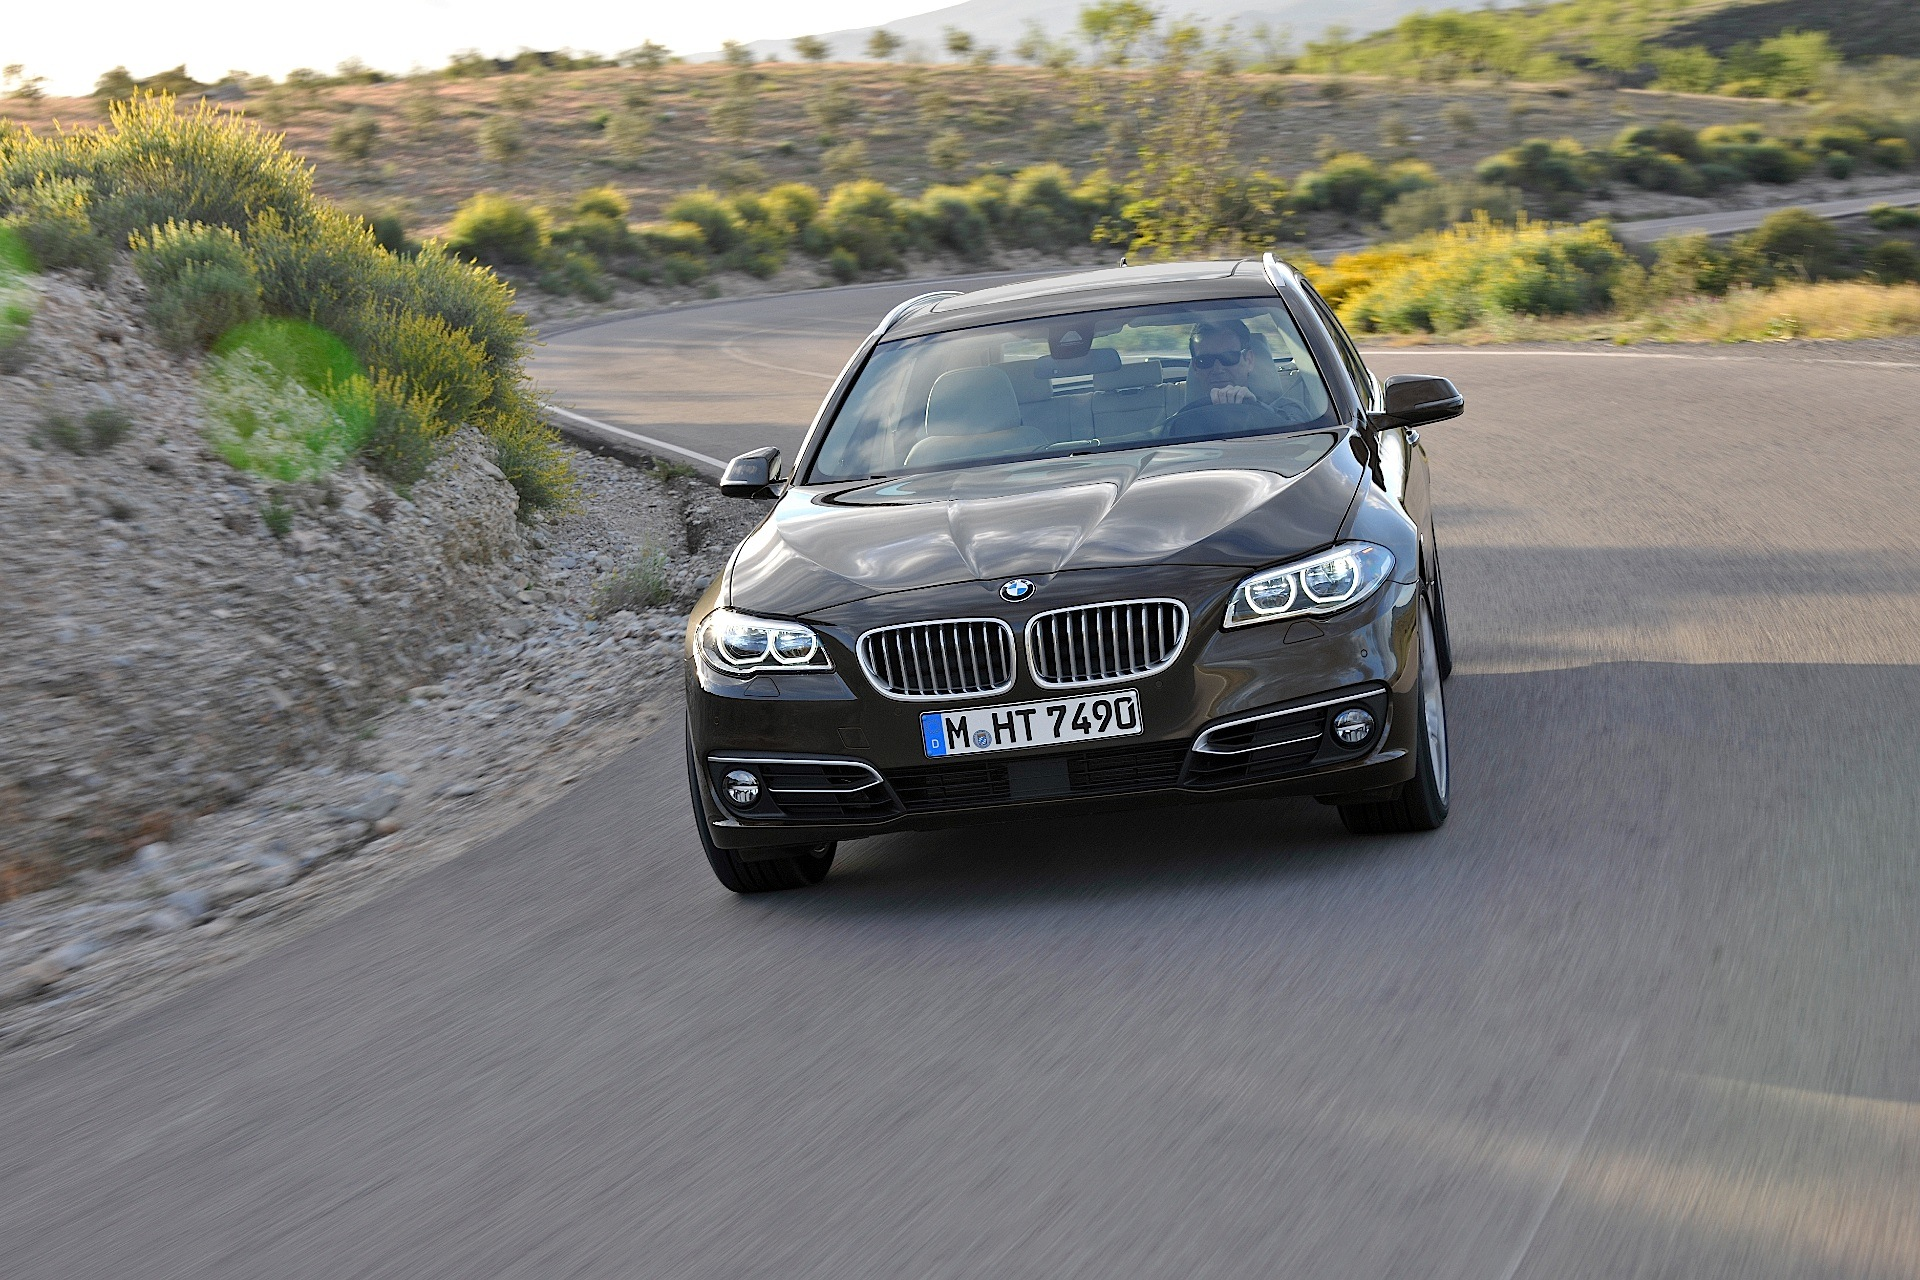 bmw 5 series touring f11 lci specs 2013 2014 2015 2016 2017 autoevolution. Black Bedroom Furniture Sets. Home Design Ideas